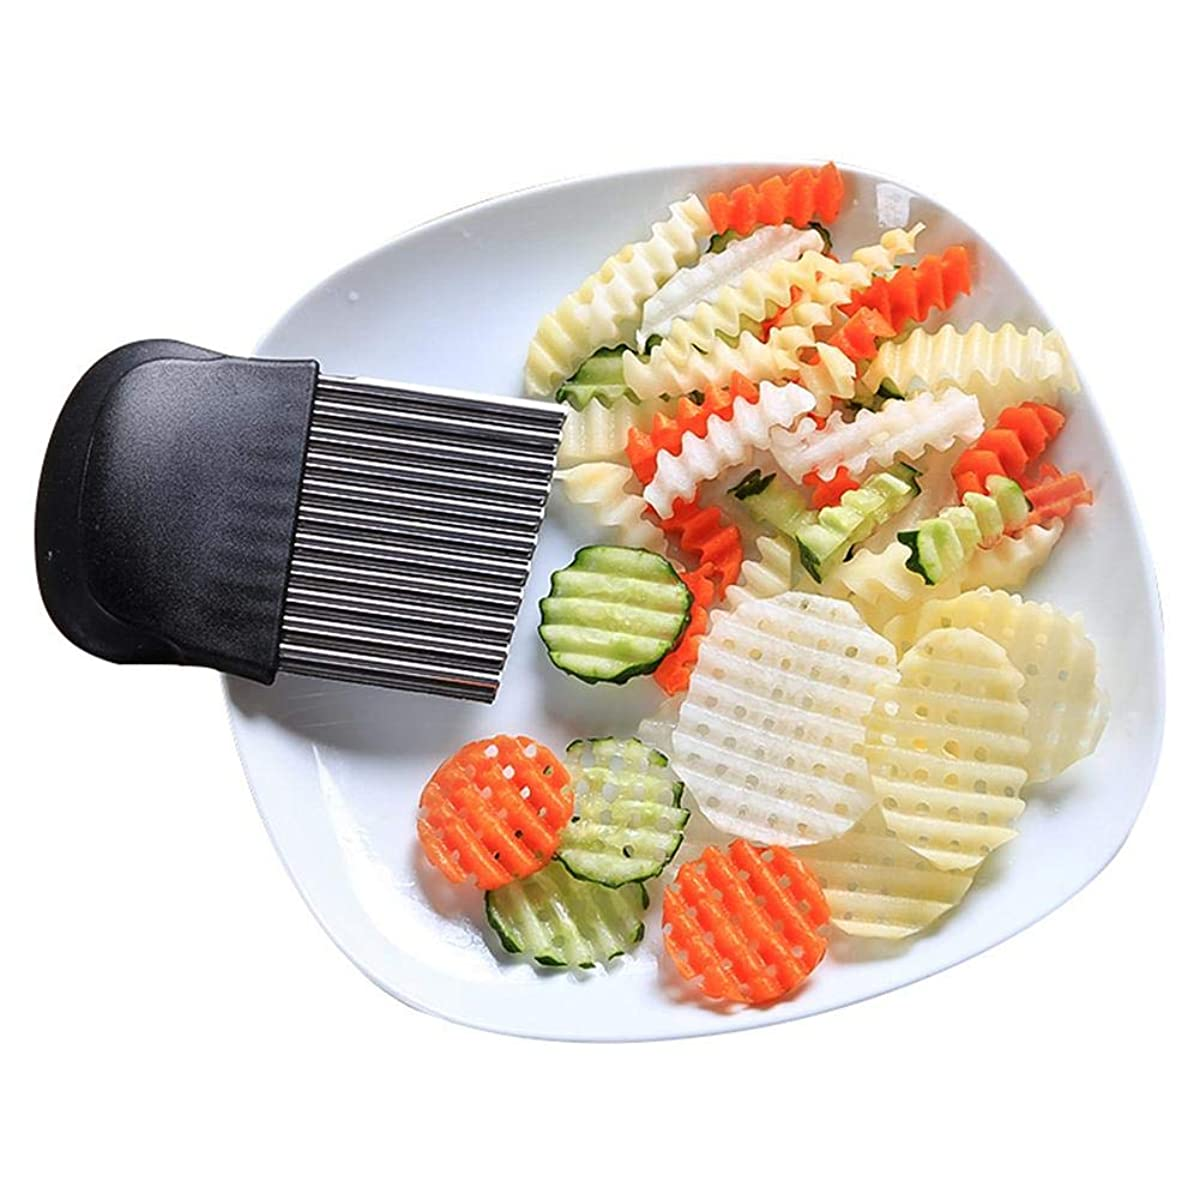 Weemoment Mandoline Slicer Manual Stainless Steel Blade Vegetable Onion Potato Slicer Food Kitchen Tools